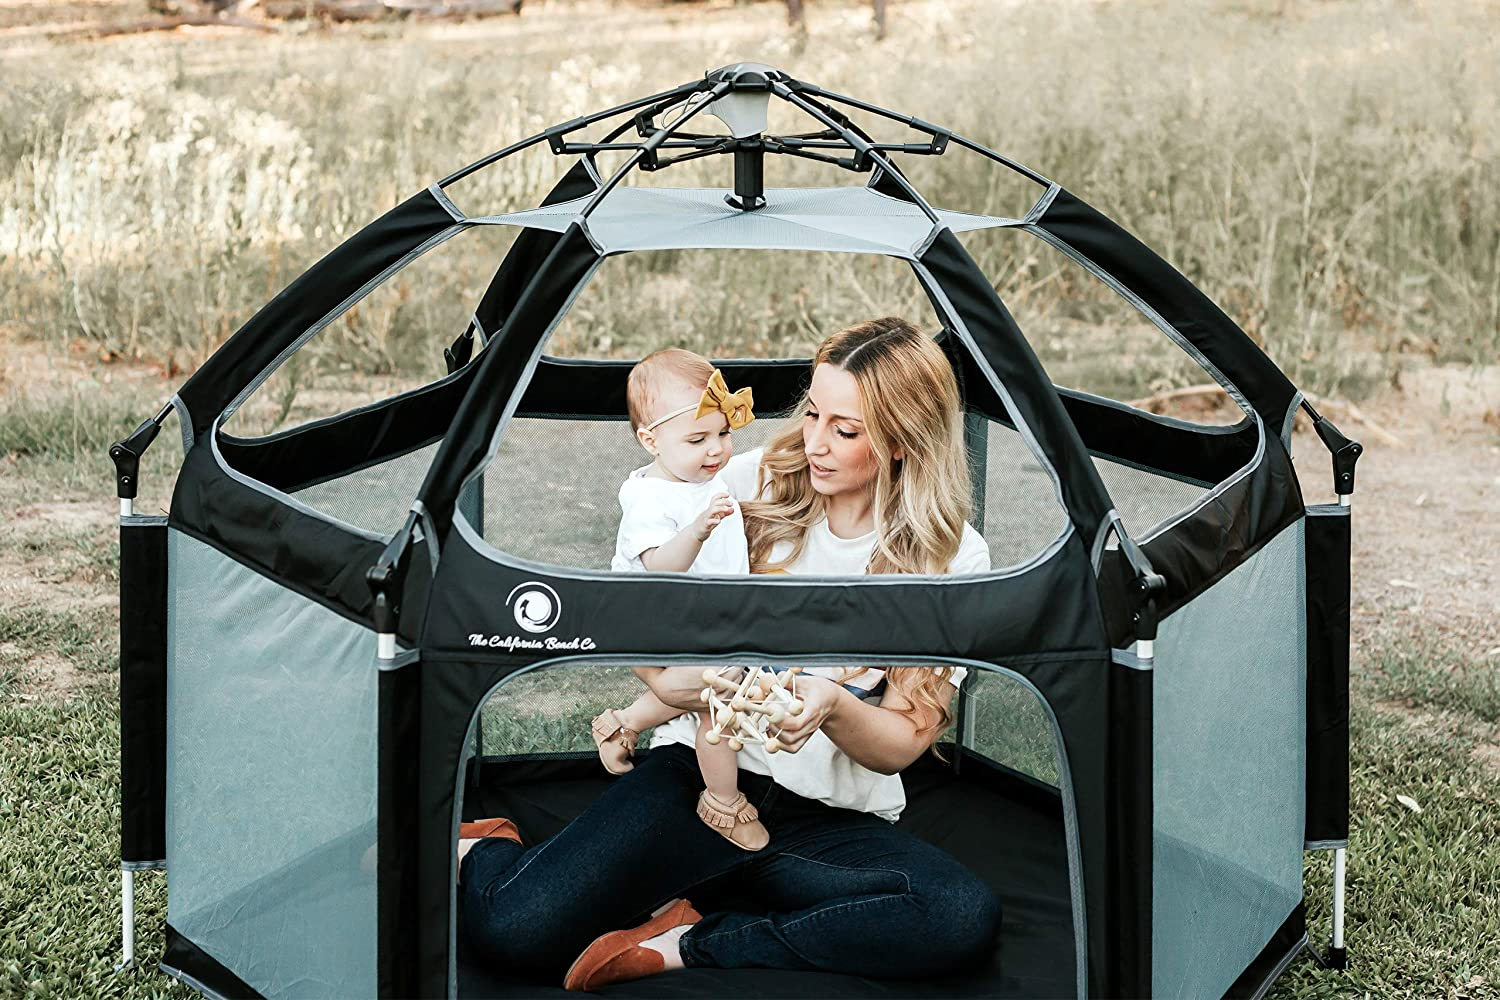 Folding Pop N Go Portable Playpen Lightweight Easily Collapsible Play Crib for Indoor /& Outdoor Play Perfect Canopy Play Pen for Any Baby Toddler or Small Child Black + Mattress